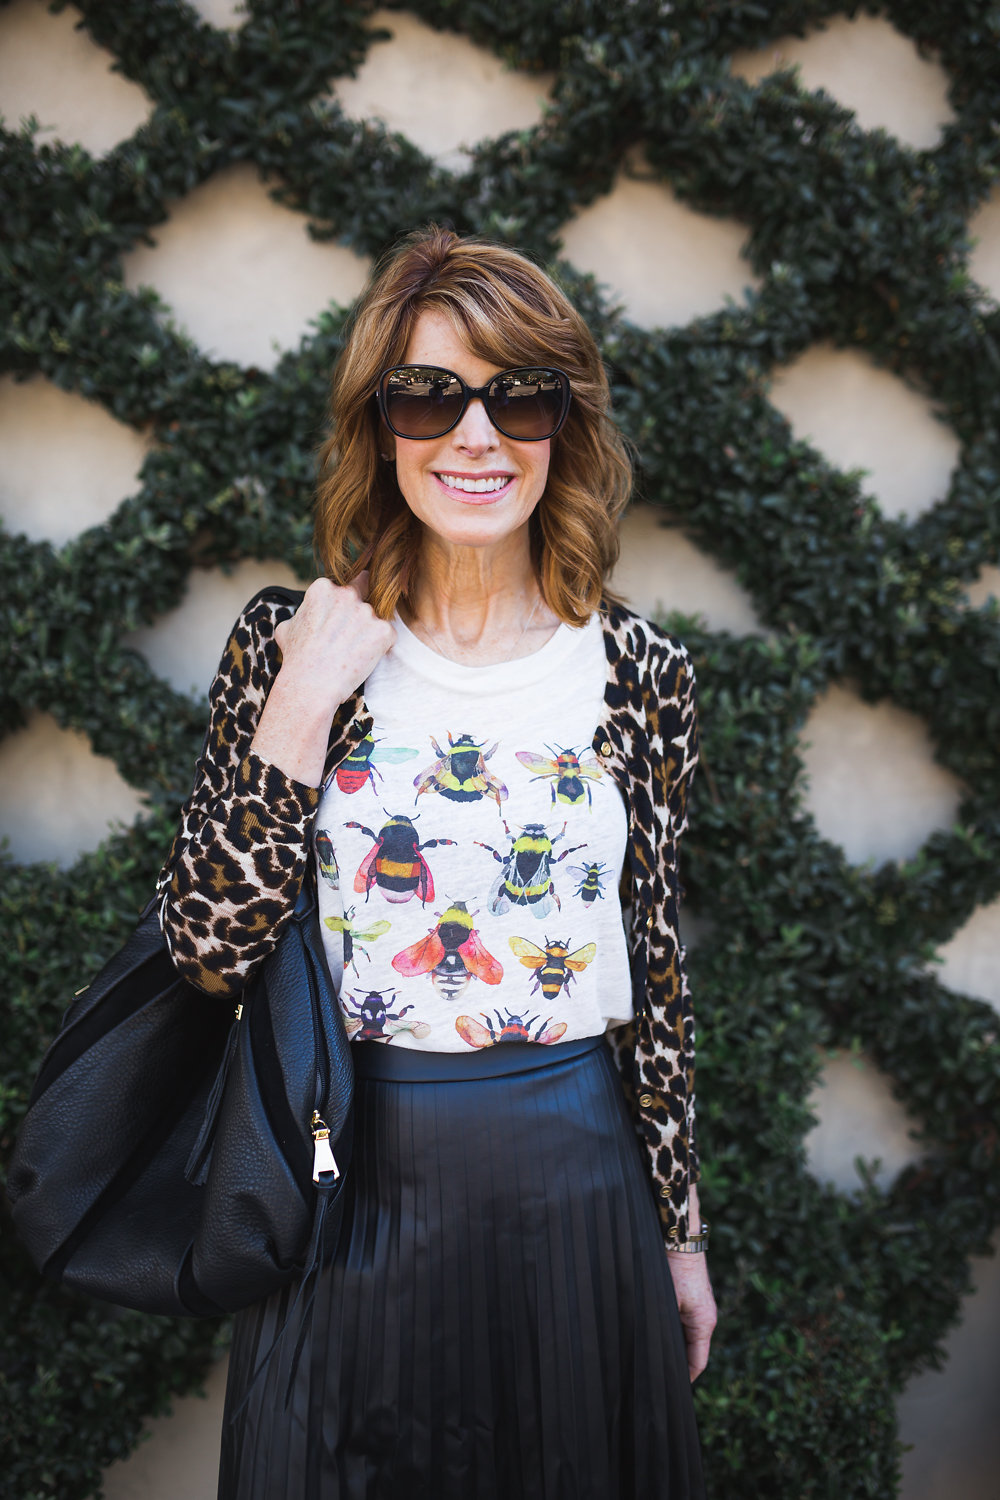 DALLAS BLOGGER, FASHION BLOGGER, OVER 50 FASHION BLOGGER